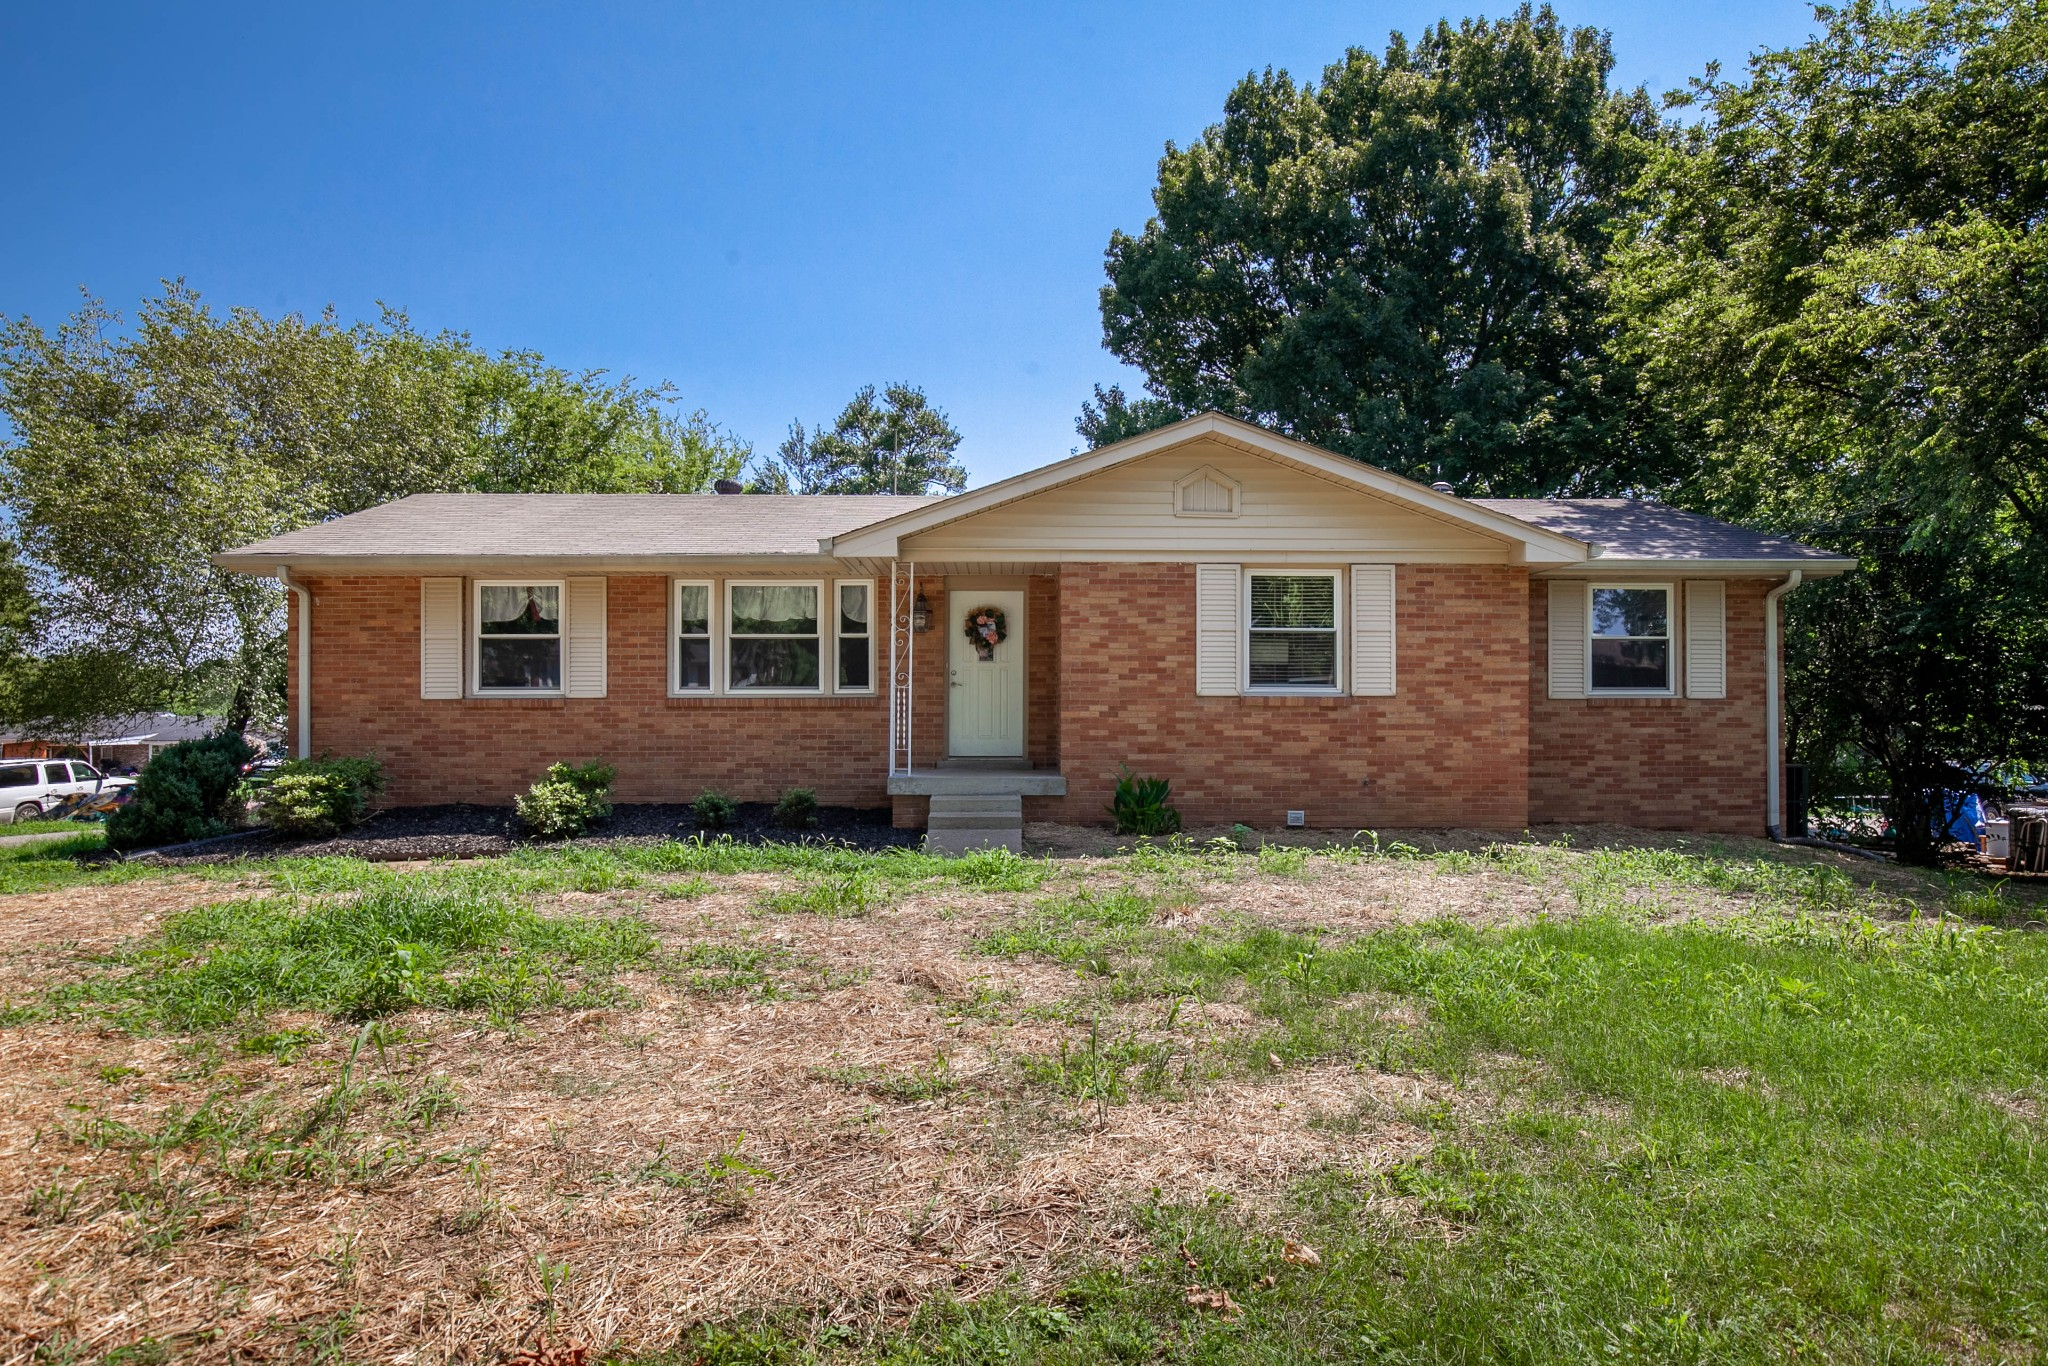 Great location-Minutes from Streets of Indian Lake & Hwy 386 Bypass! Updated Kitchen! New Windows, Newer Roof, Original hardwoods throughout main level. Screened in Porch! Tile floors & wood burning fireplace in partially finished basement! Indian Lake Peninsula schools. Great bones, great potential!